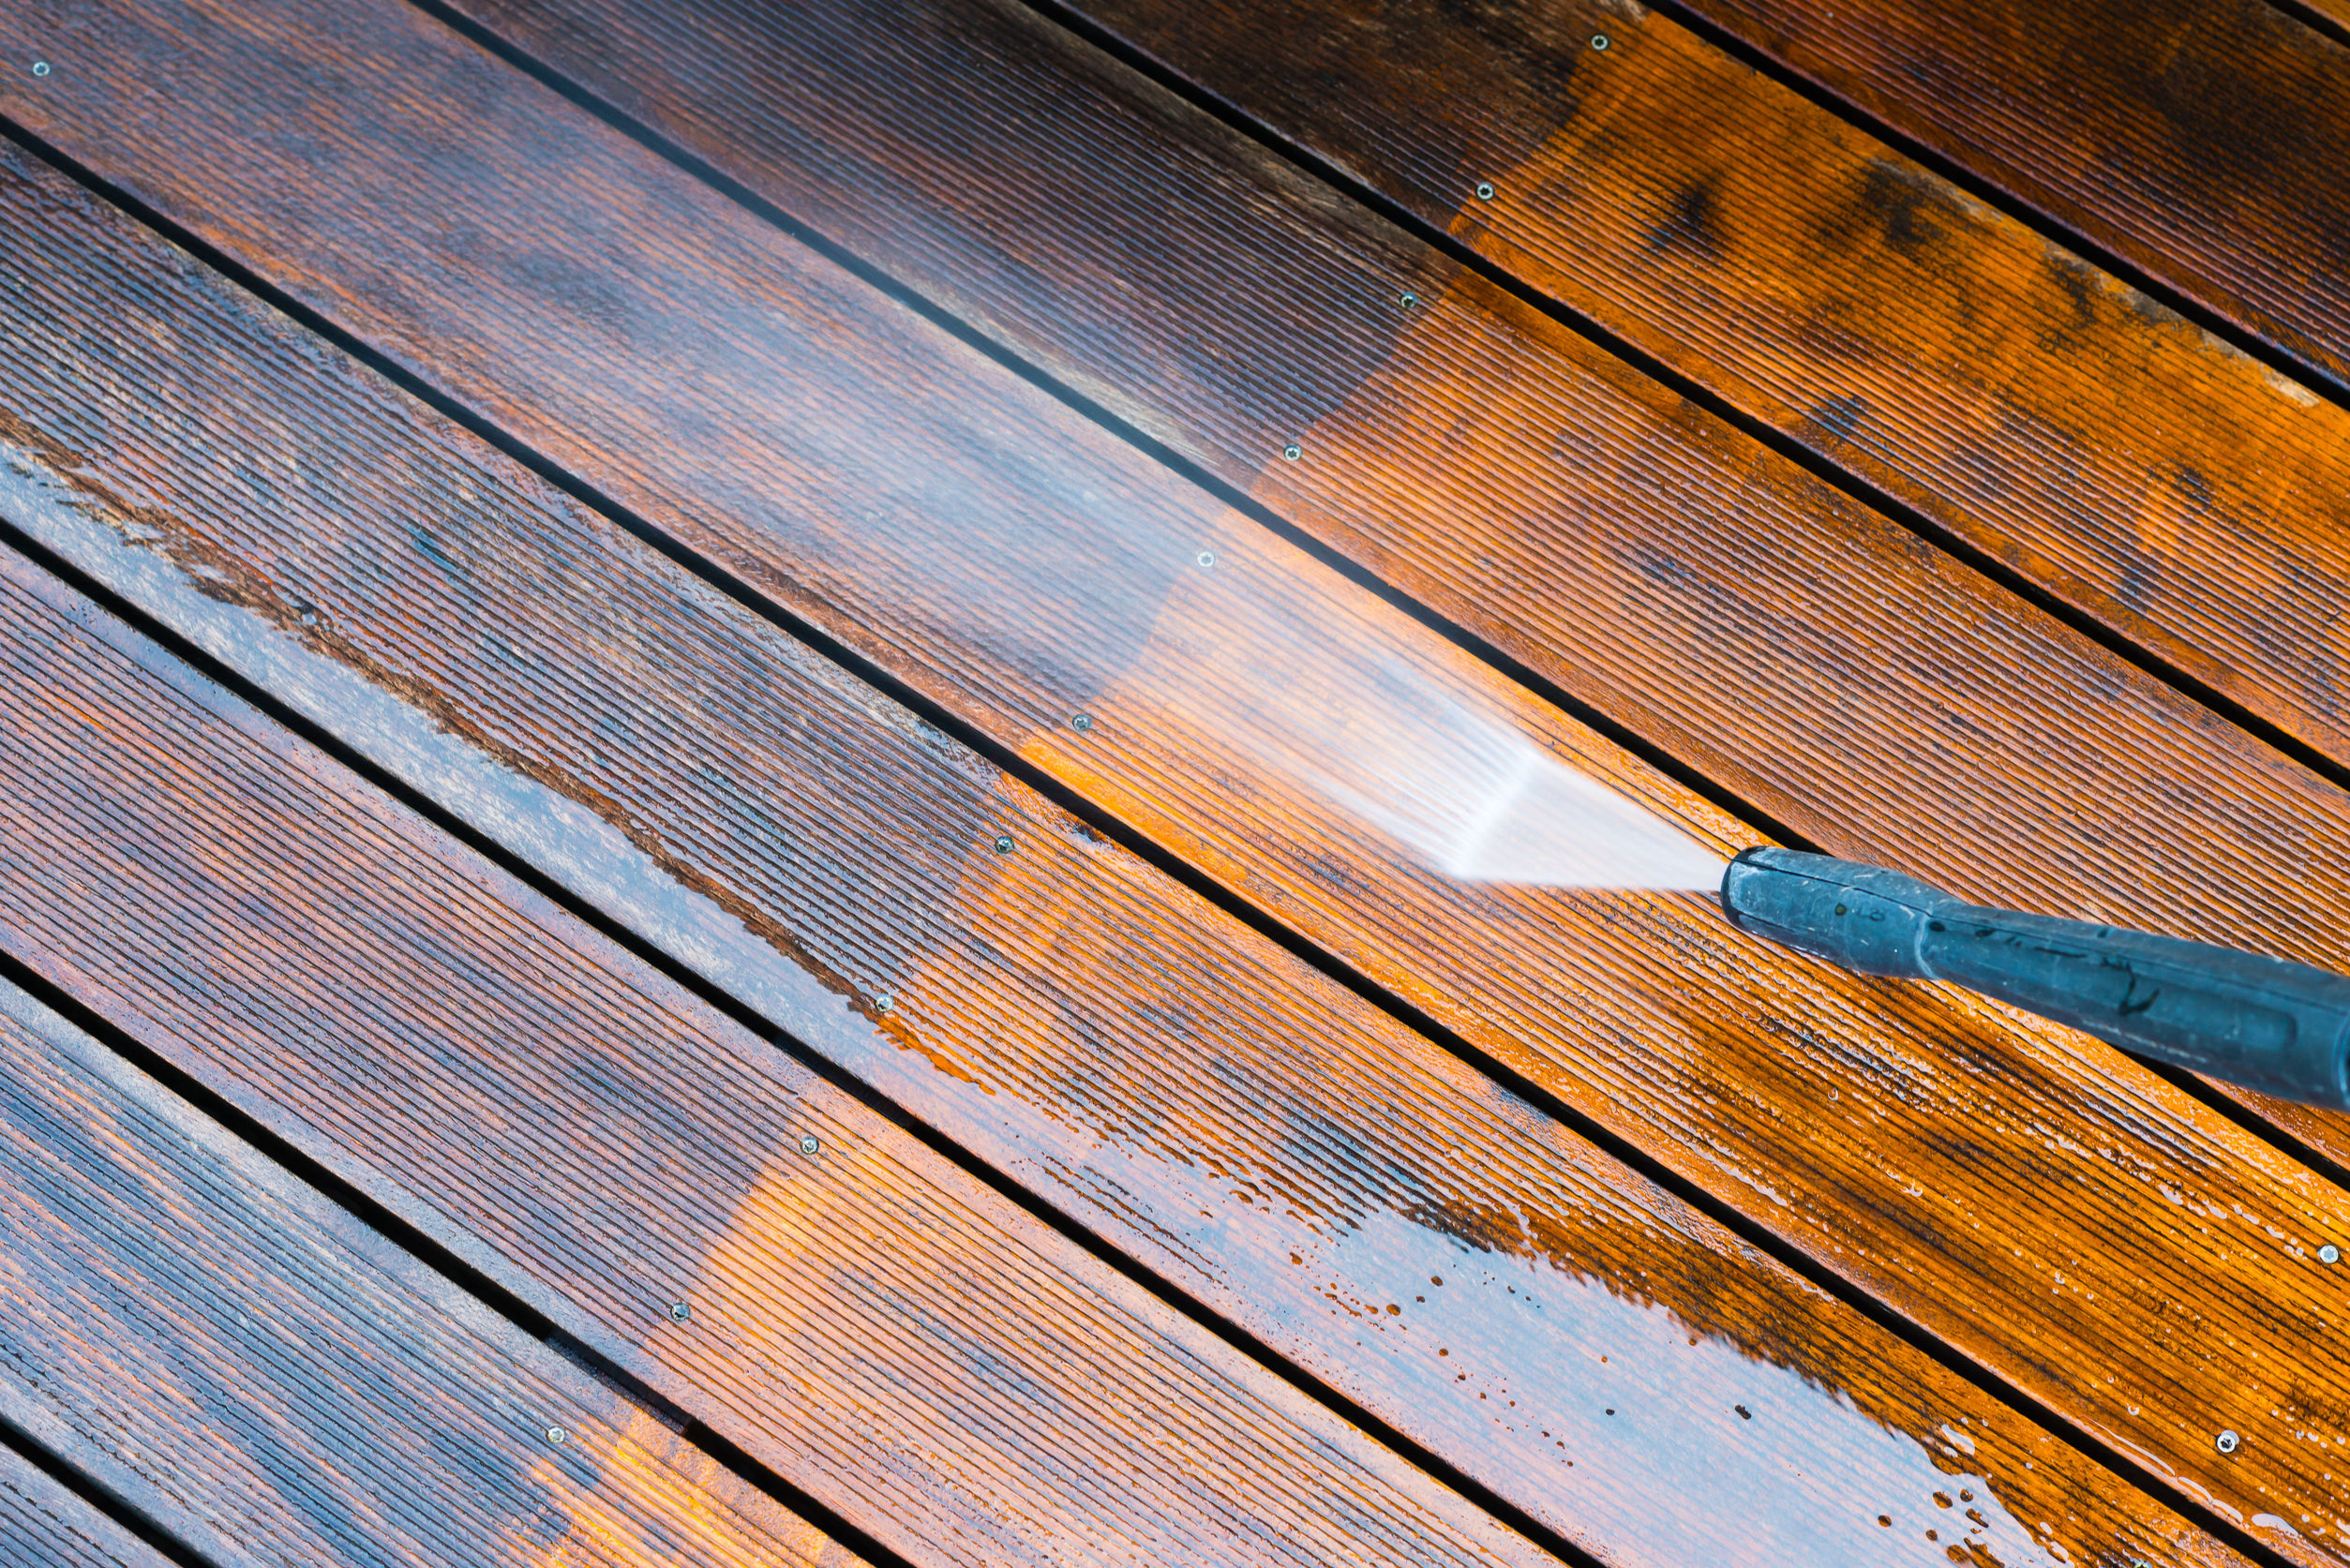 Deck and Patio Washing & Deck u0026 Patio Power Washing Services | Columbus Power Cleaning